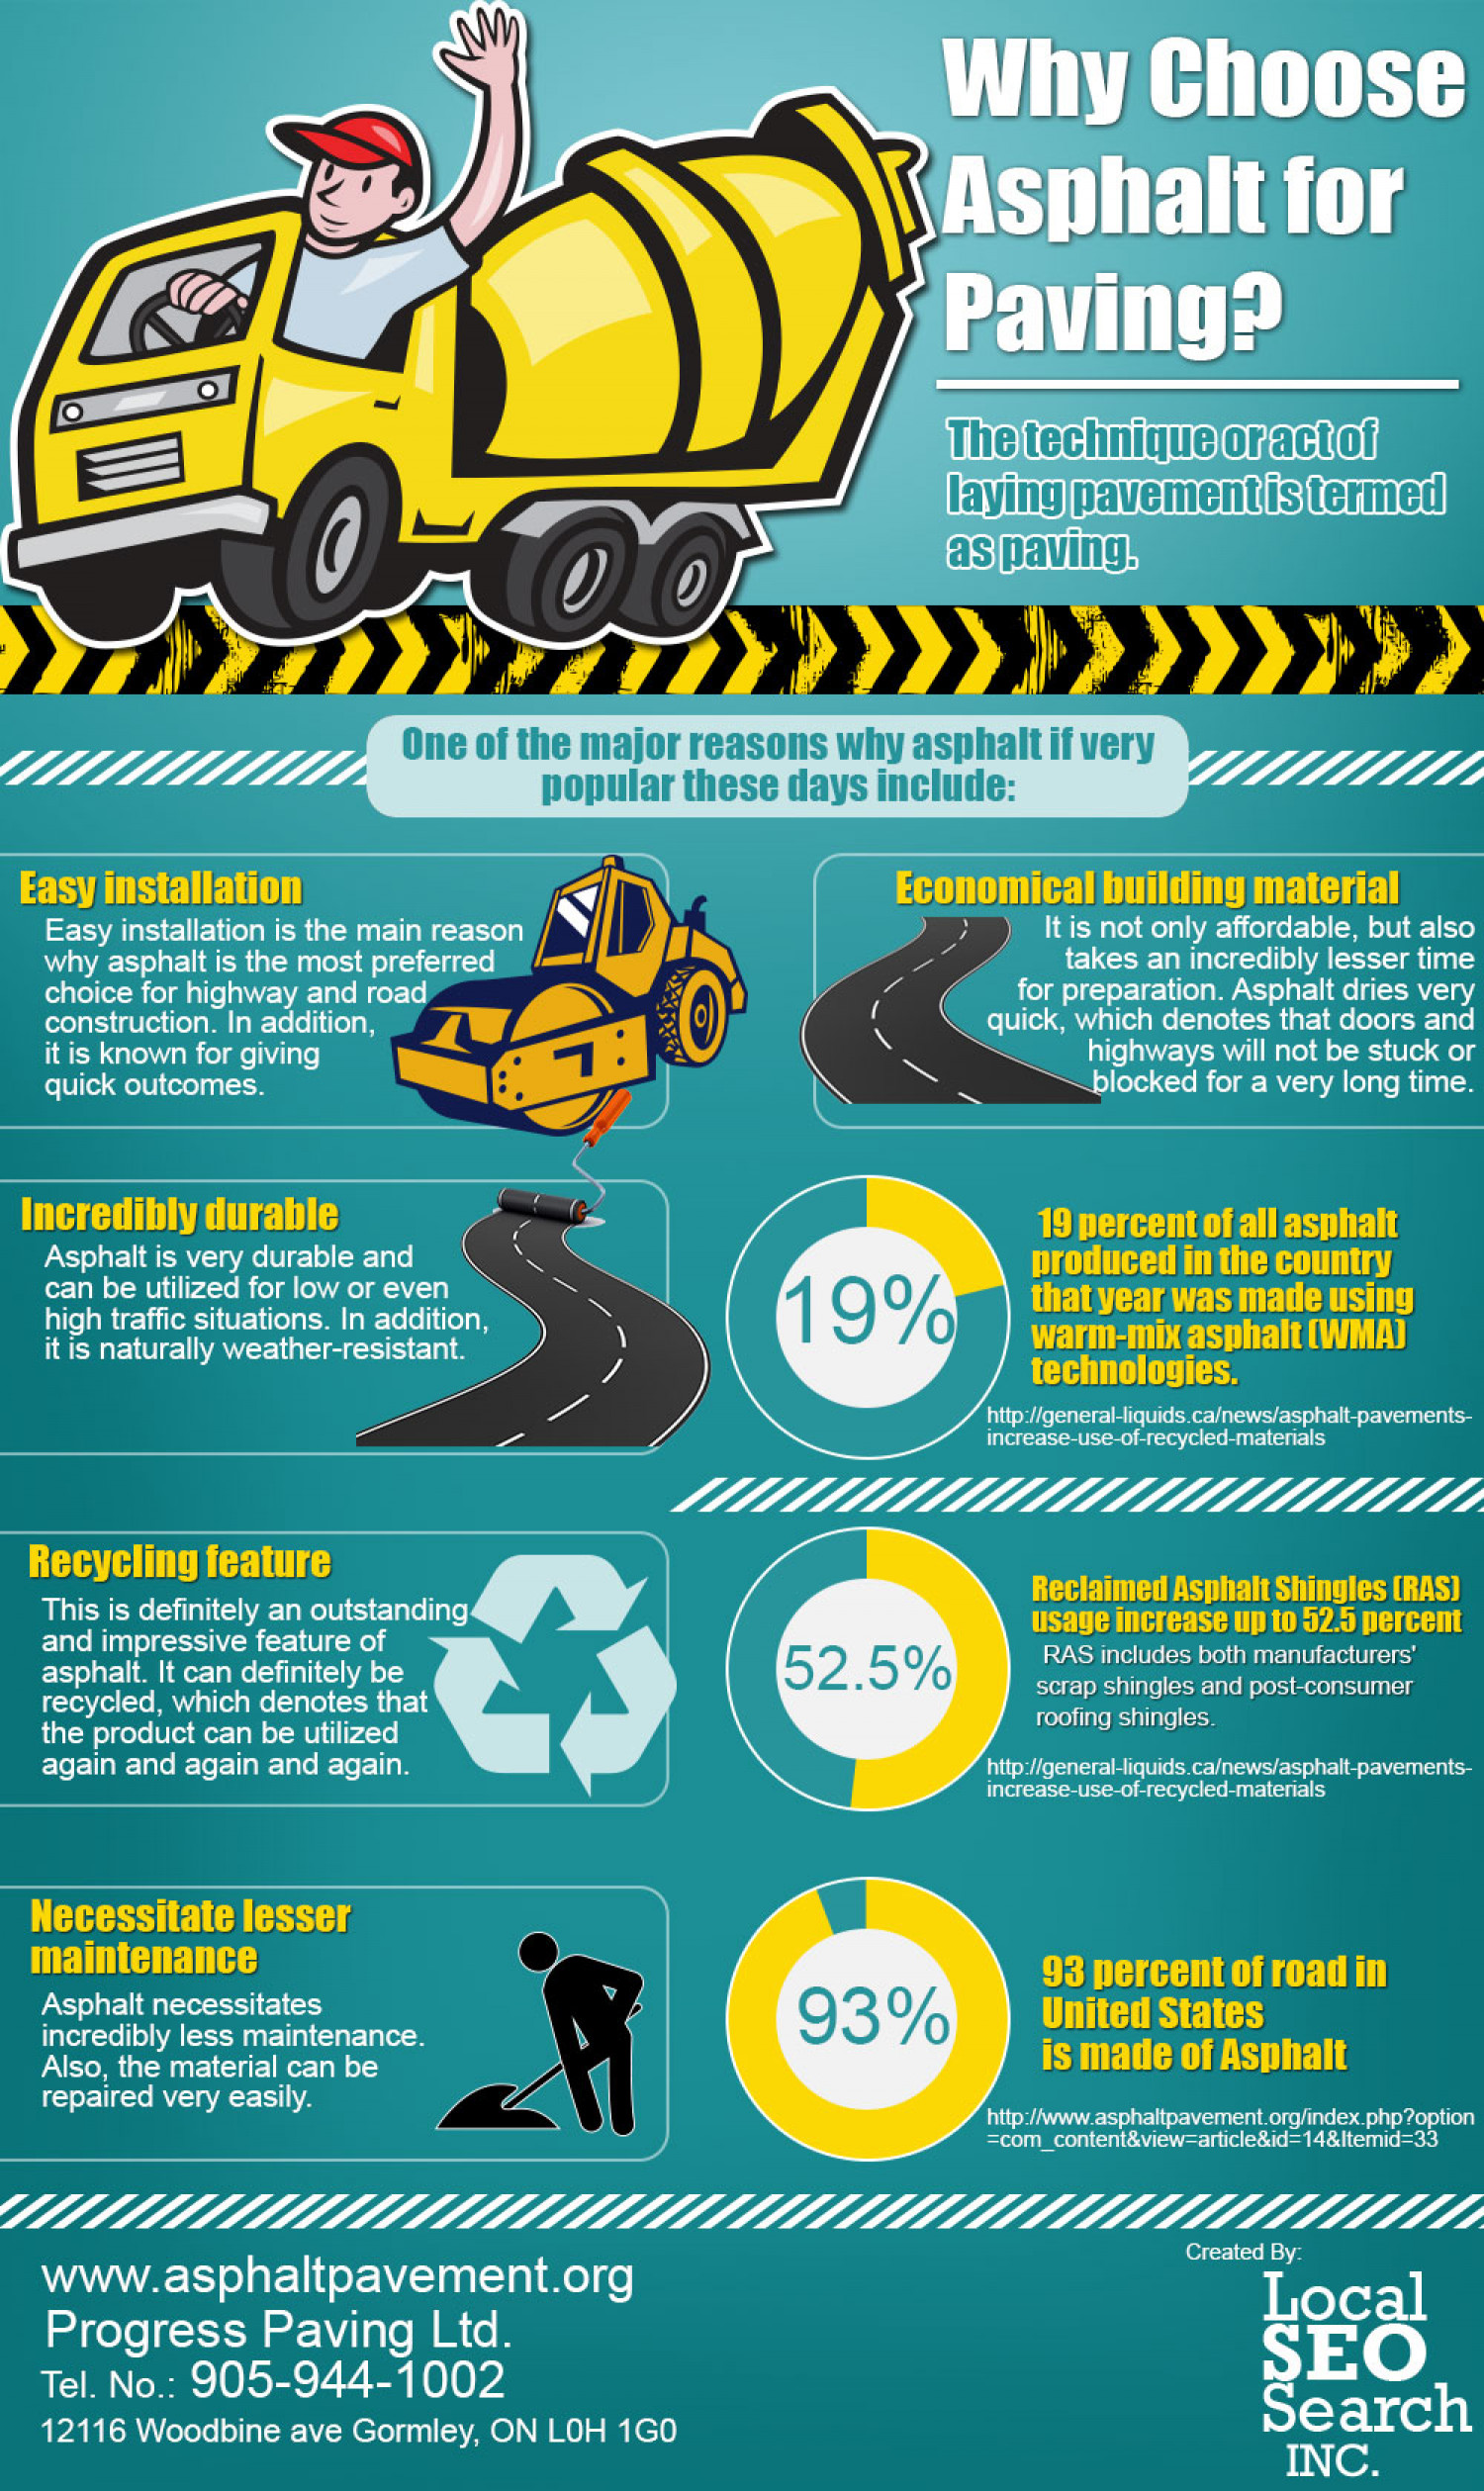 Why Choose Asphalt for Paving Infographic